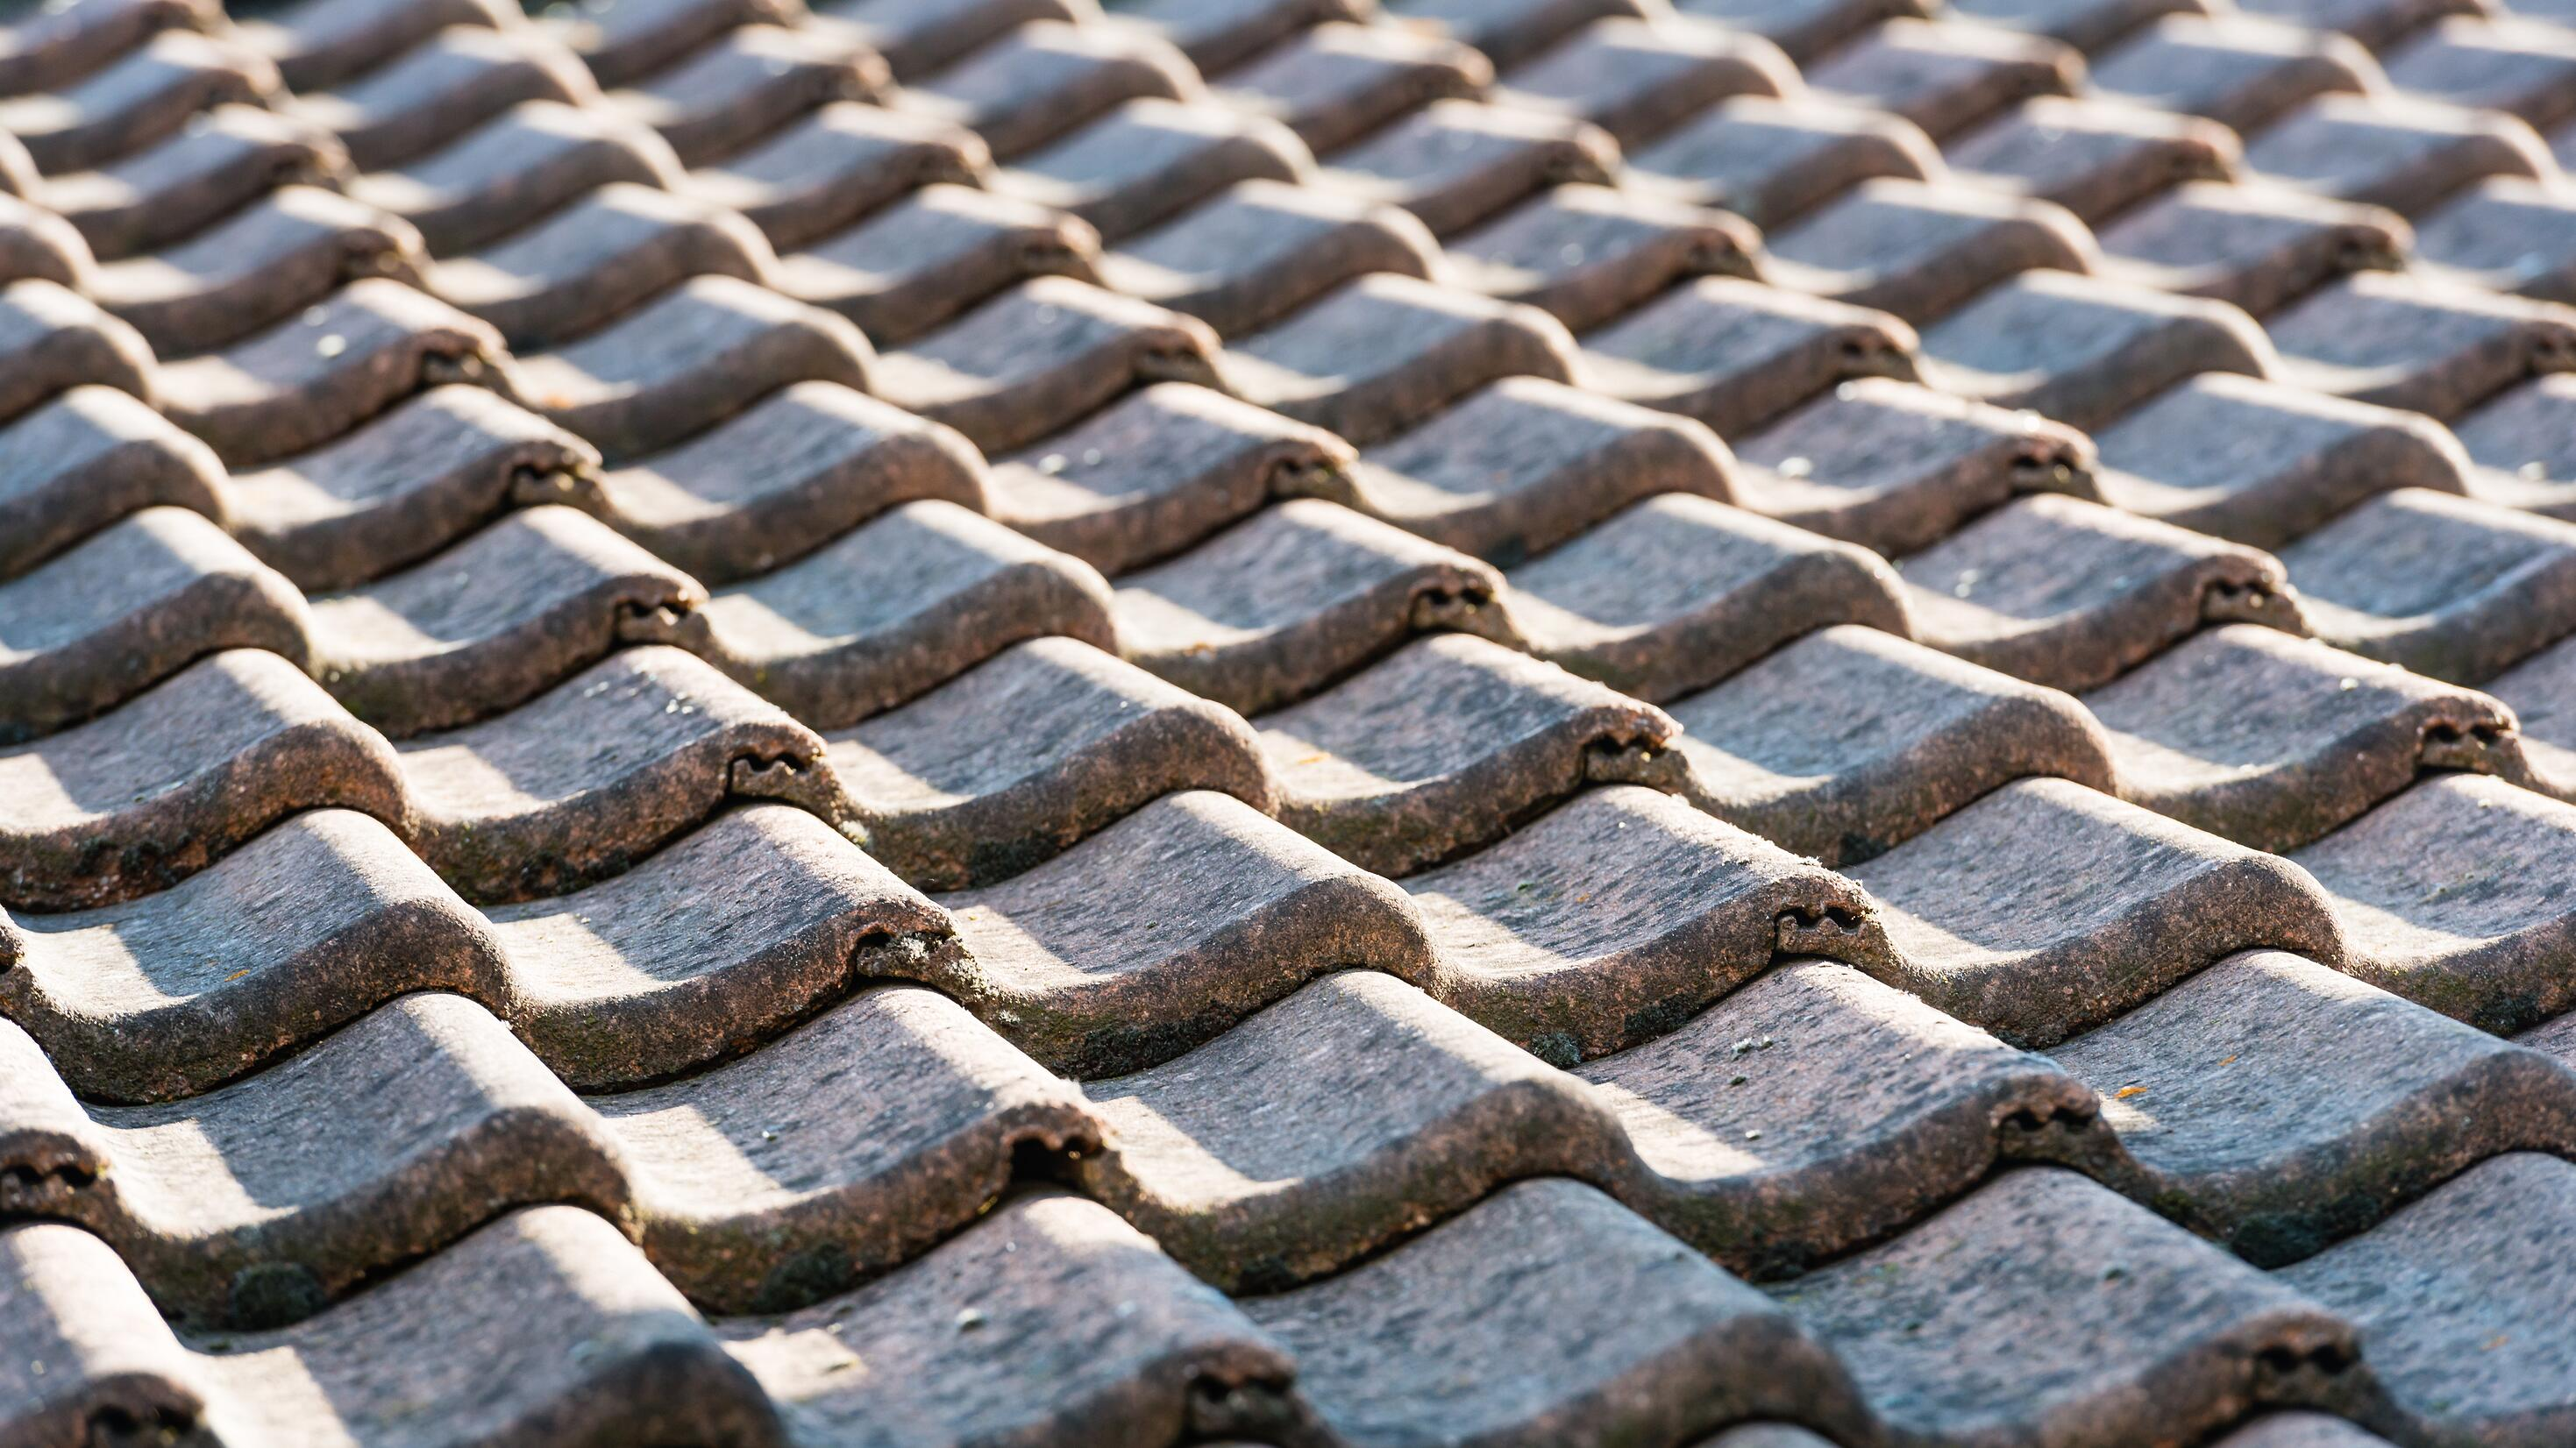 dating roof tiles Clay tile roofing is one of the oldest and most used types of roofing in the world there has been evidence found of its use dating back to 10,000 bc, and in locations from north america, to egypt, to rome.